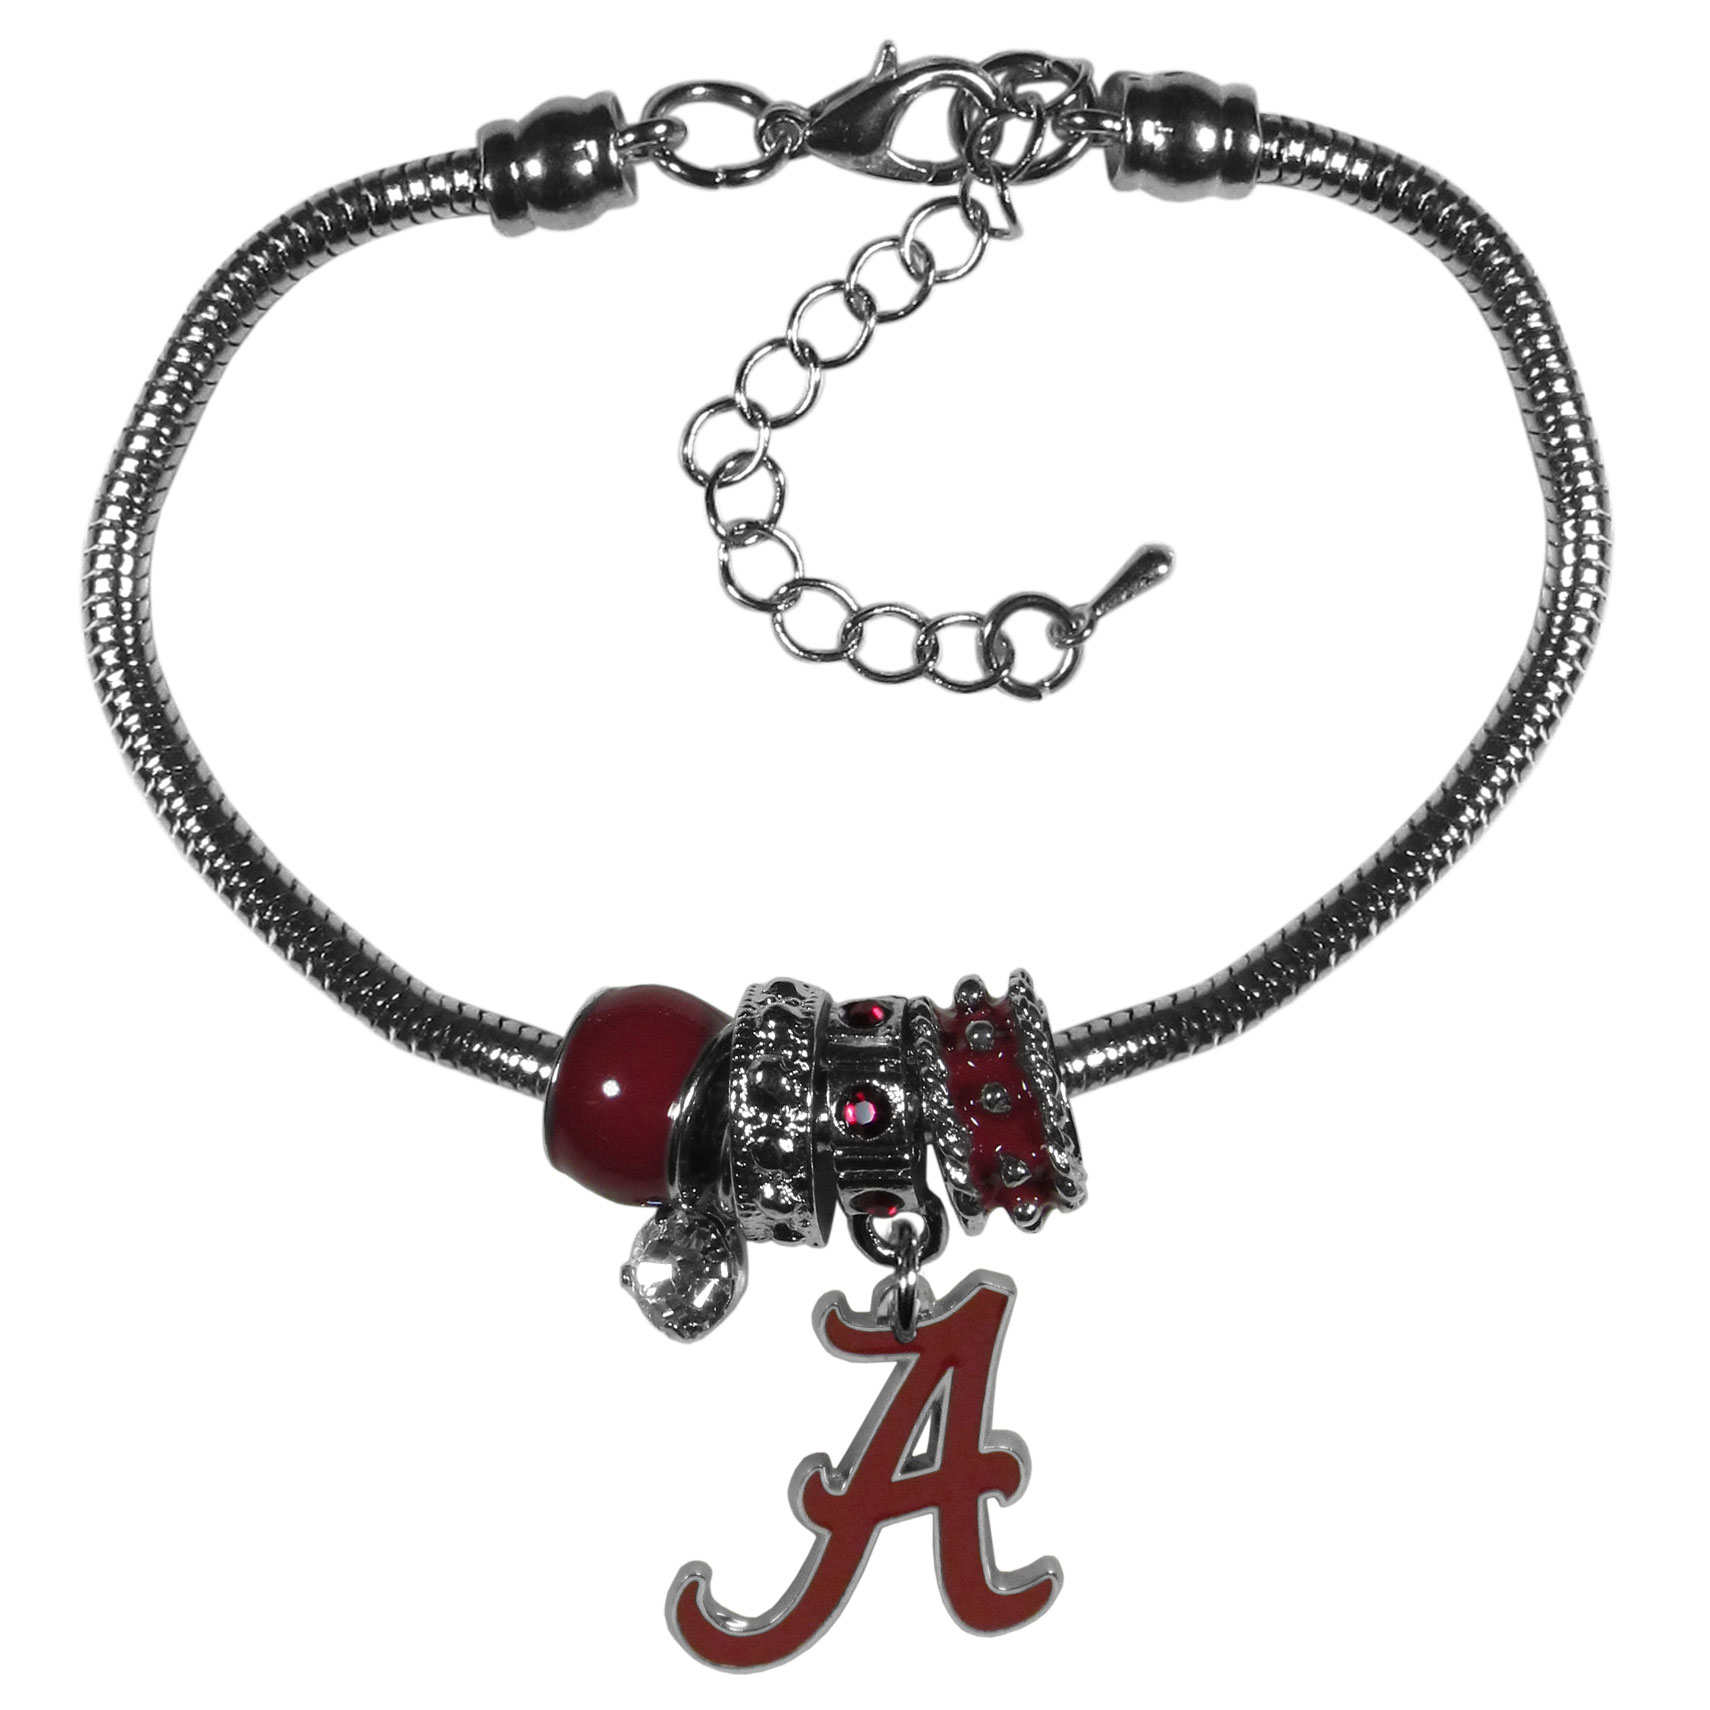 Alabama Crimson Tide Euro Bead Bracelet - We have combined the wildly popular Euro style beads with your favorite team to create our  Alabama Crimson Tide bead bracelet. The 7.5 inch snake chain with 2 inch extender features 4 Euro beads with enameled team colors and rhinestone accents with a high polish, nickel free charm and rhinestone charm. Perfect way to show off your team pride.